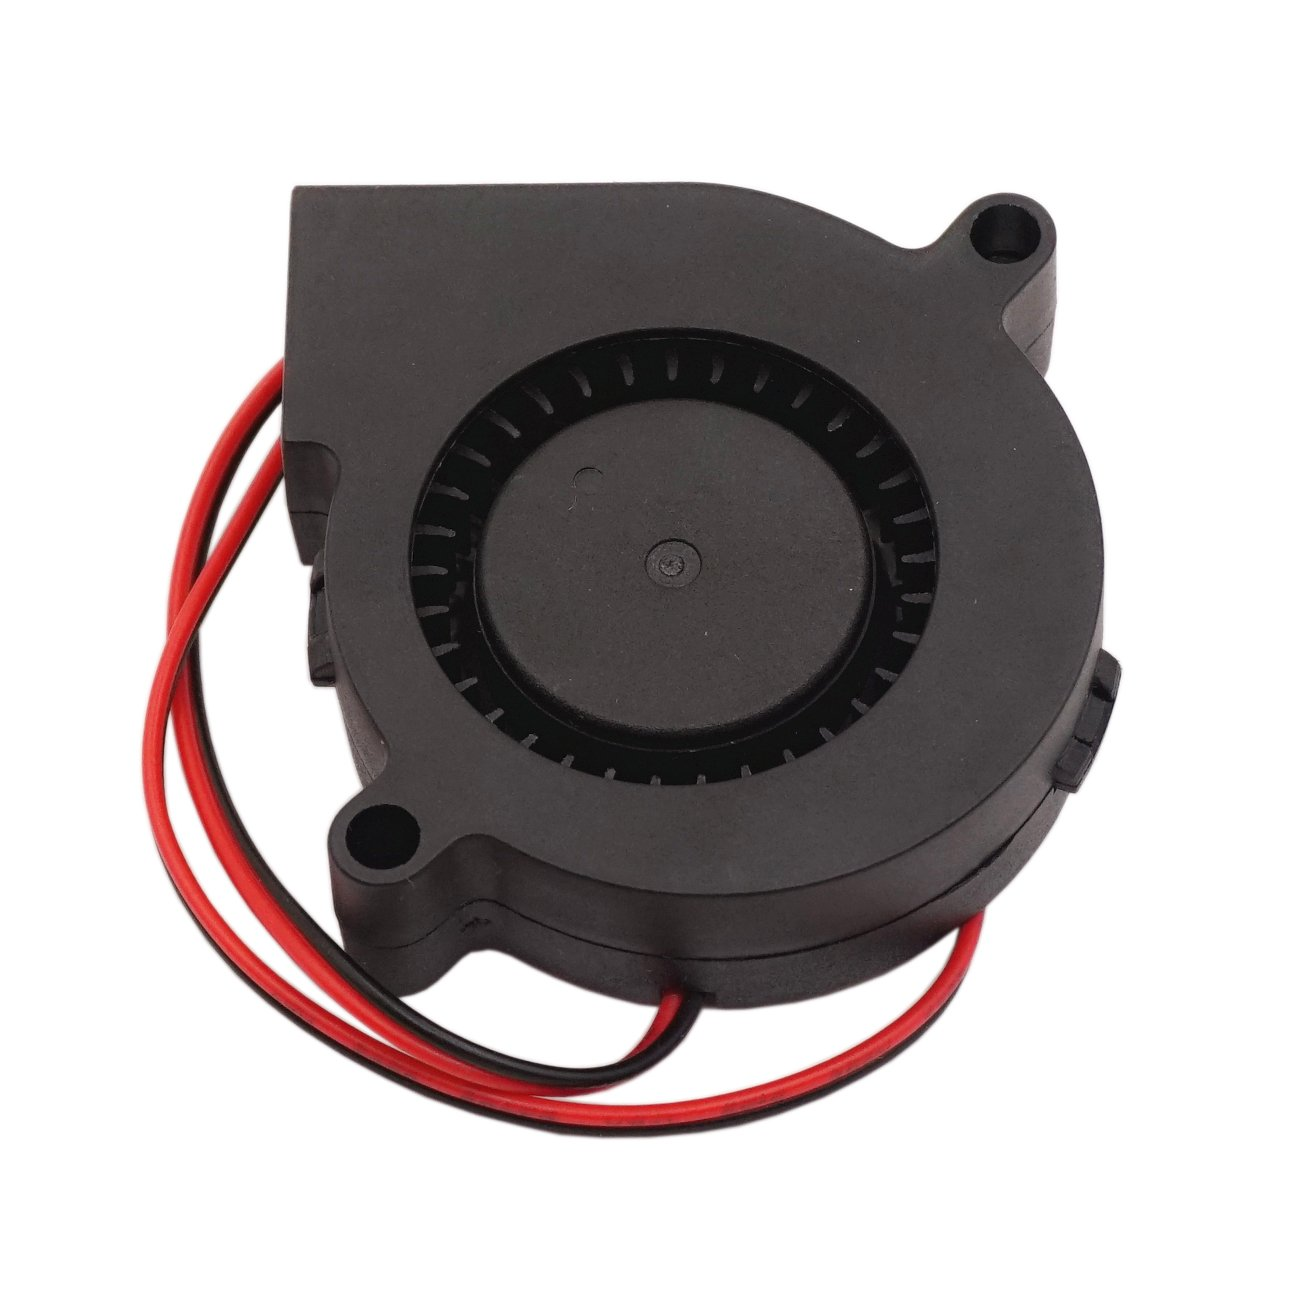 2Pin 0.1A 2.4W 6200+-10/% RPM WINSINN Blower Fan 24V 50mm 50x15mm 5015 DC Brushless Cooling For 3D Printer Extruder Hotend Makerbot MK7 MK8 CPU Chip Arduino Pack of 4Pcs